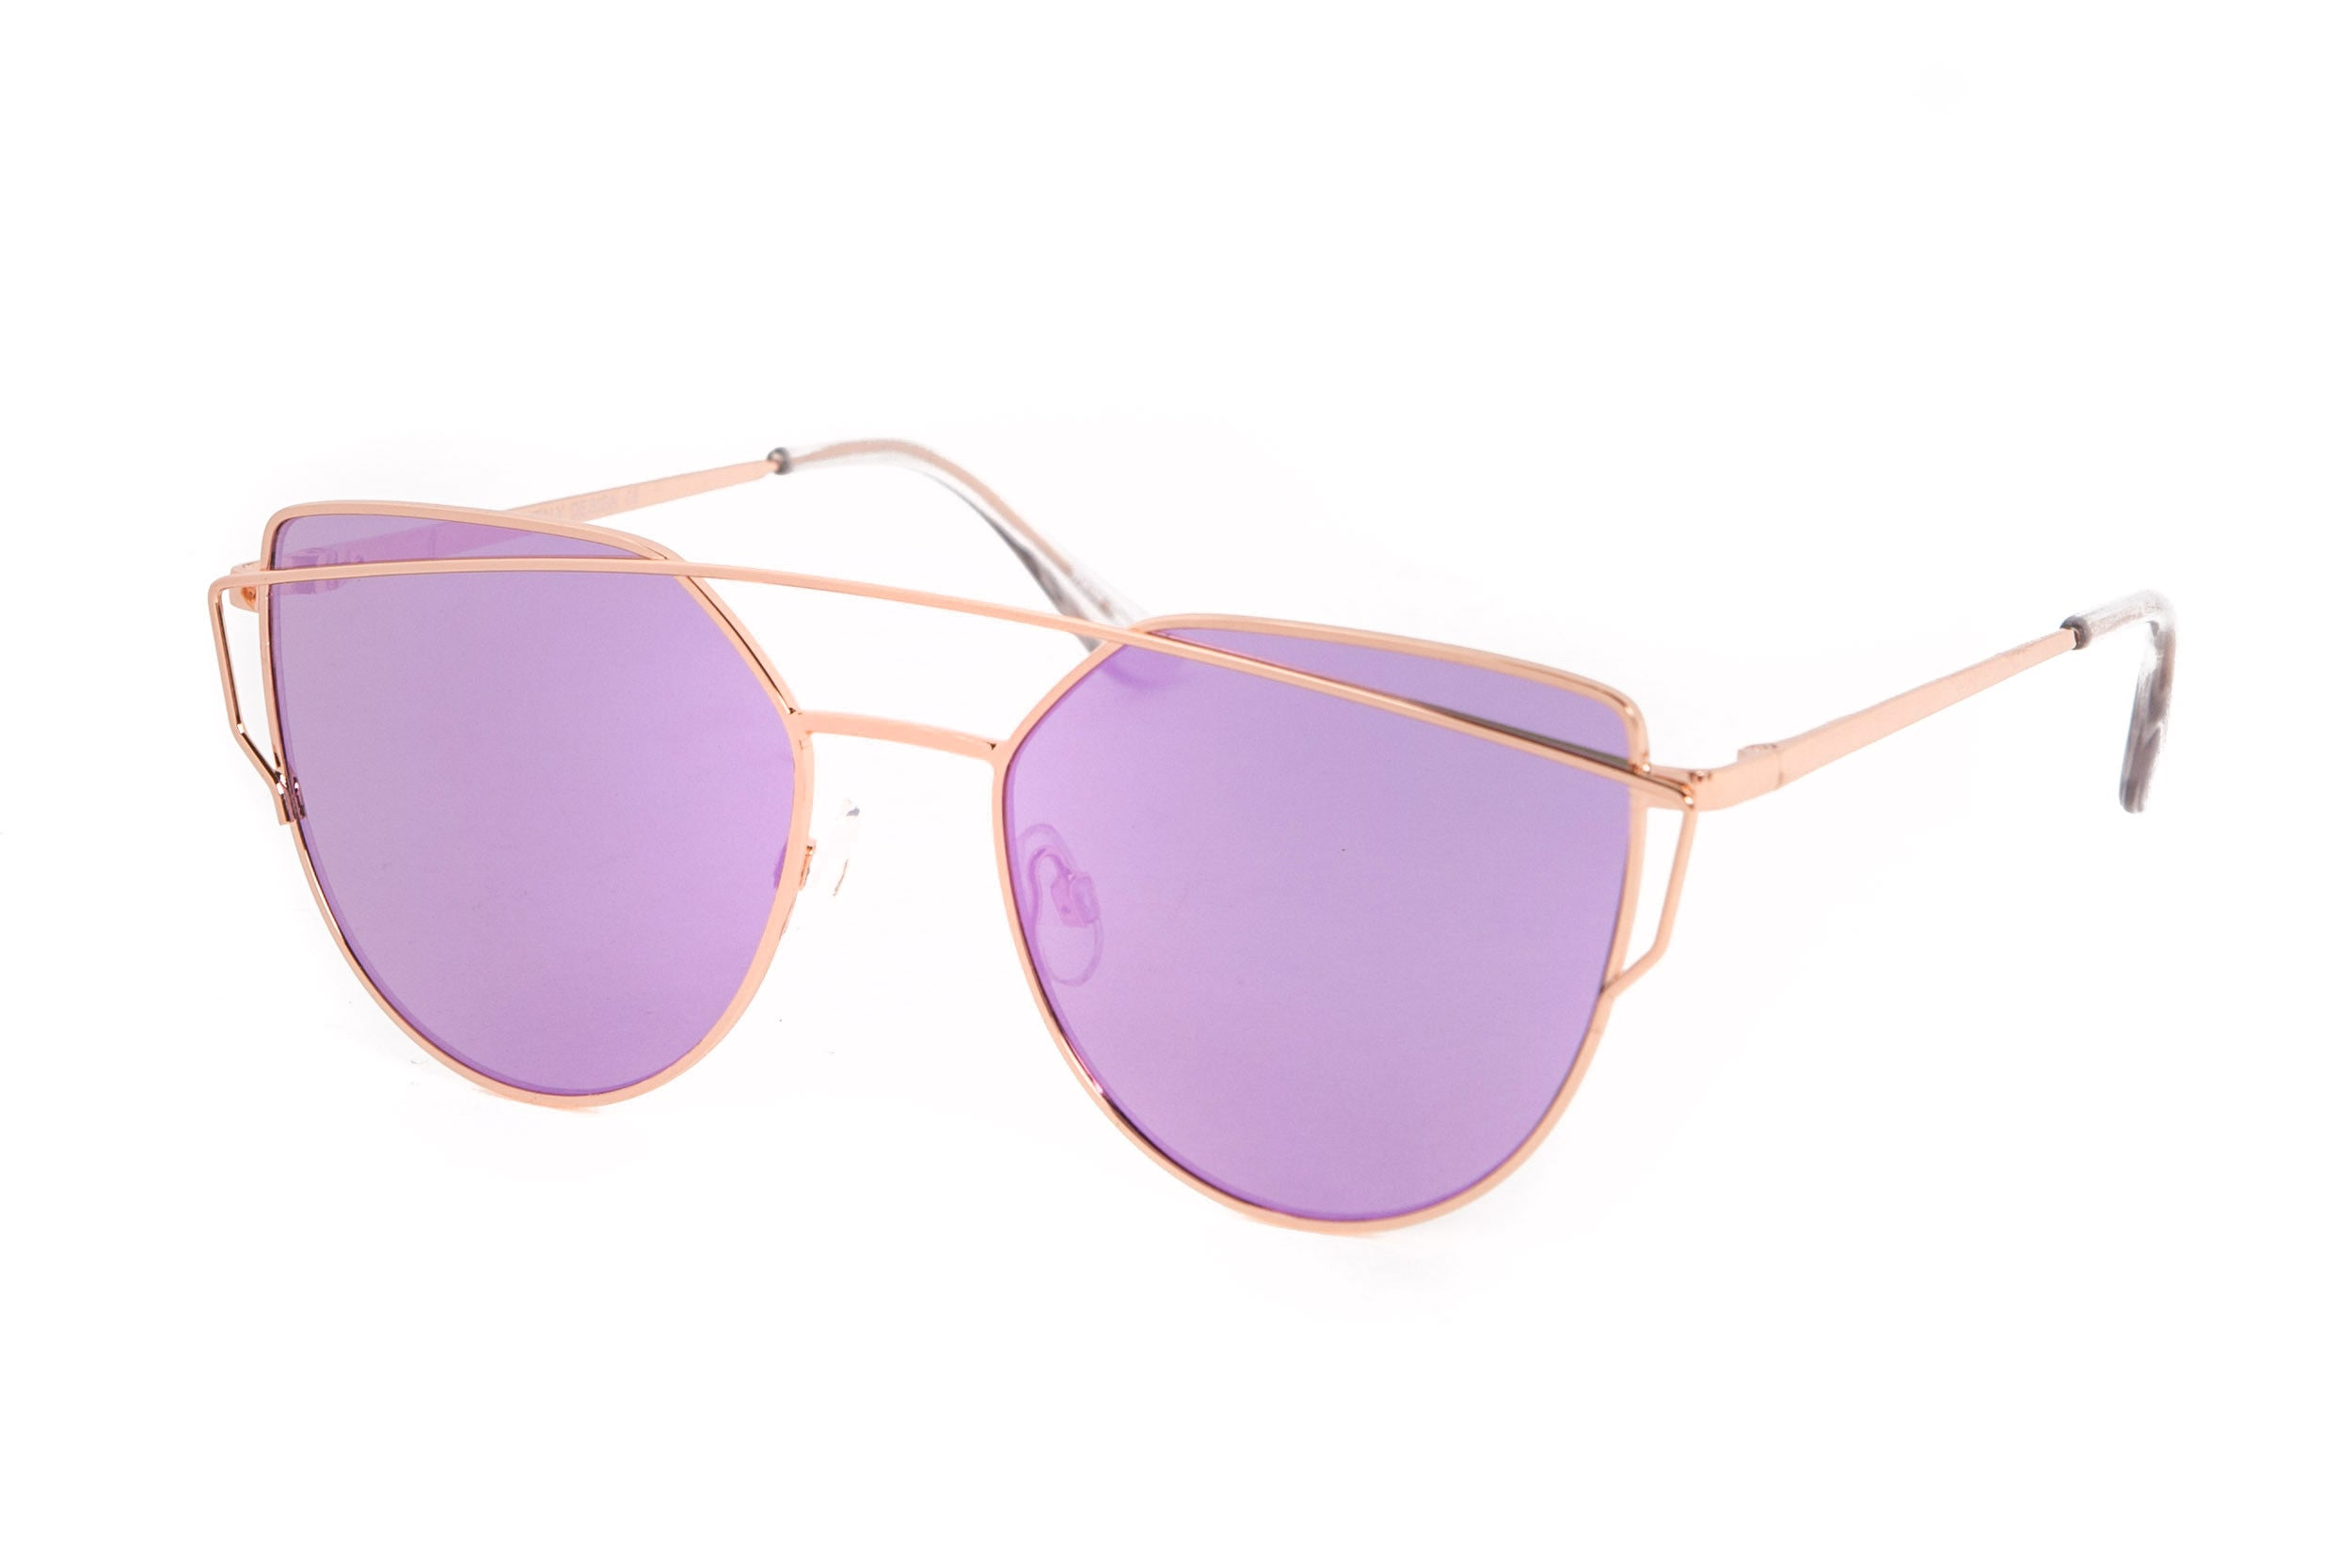 e43ec70dc39b6 Winged Sunglasses  Winged Sunglasses